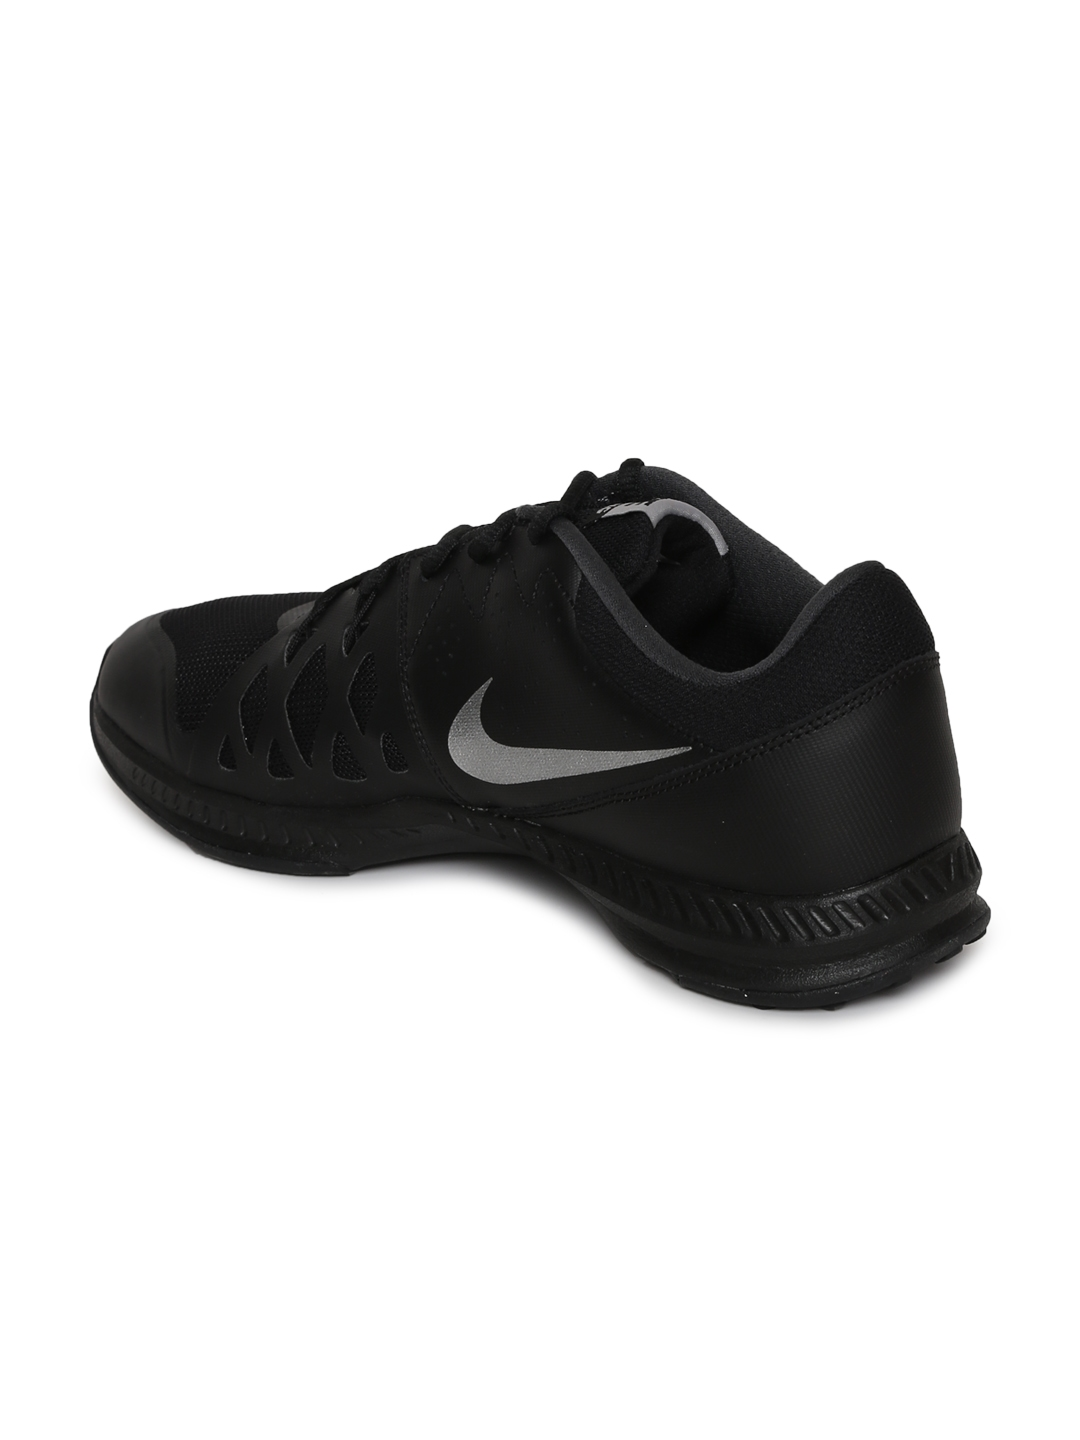 9fa4da81f2ecc Buy Nike Men Black AIR EPIC SPEED TR II Leather Training Shoes ...